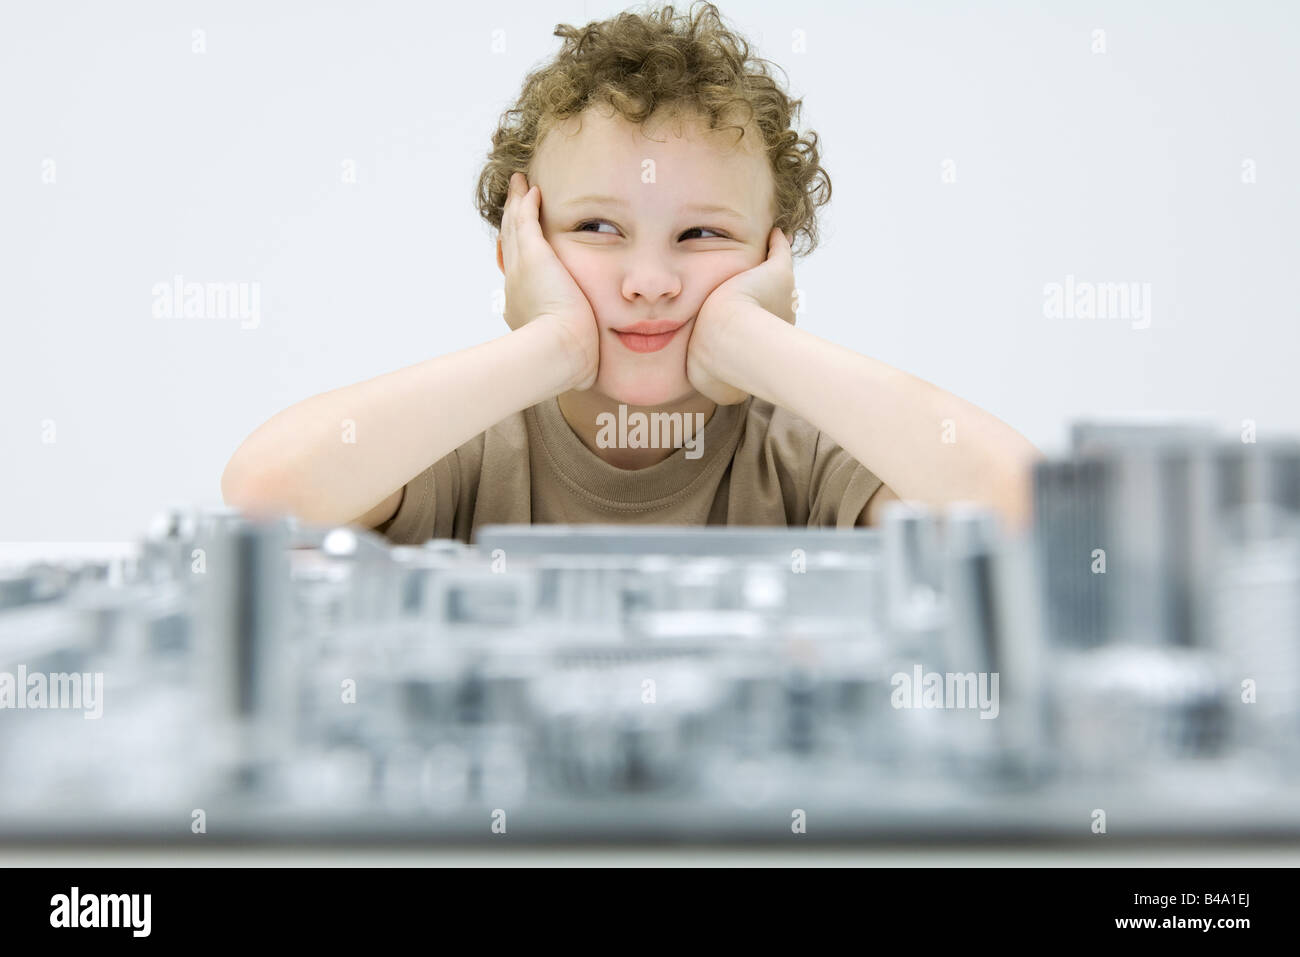 Little boy sitting with computer motherboard, holding head, looking away - Stock Image